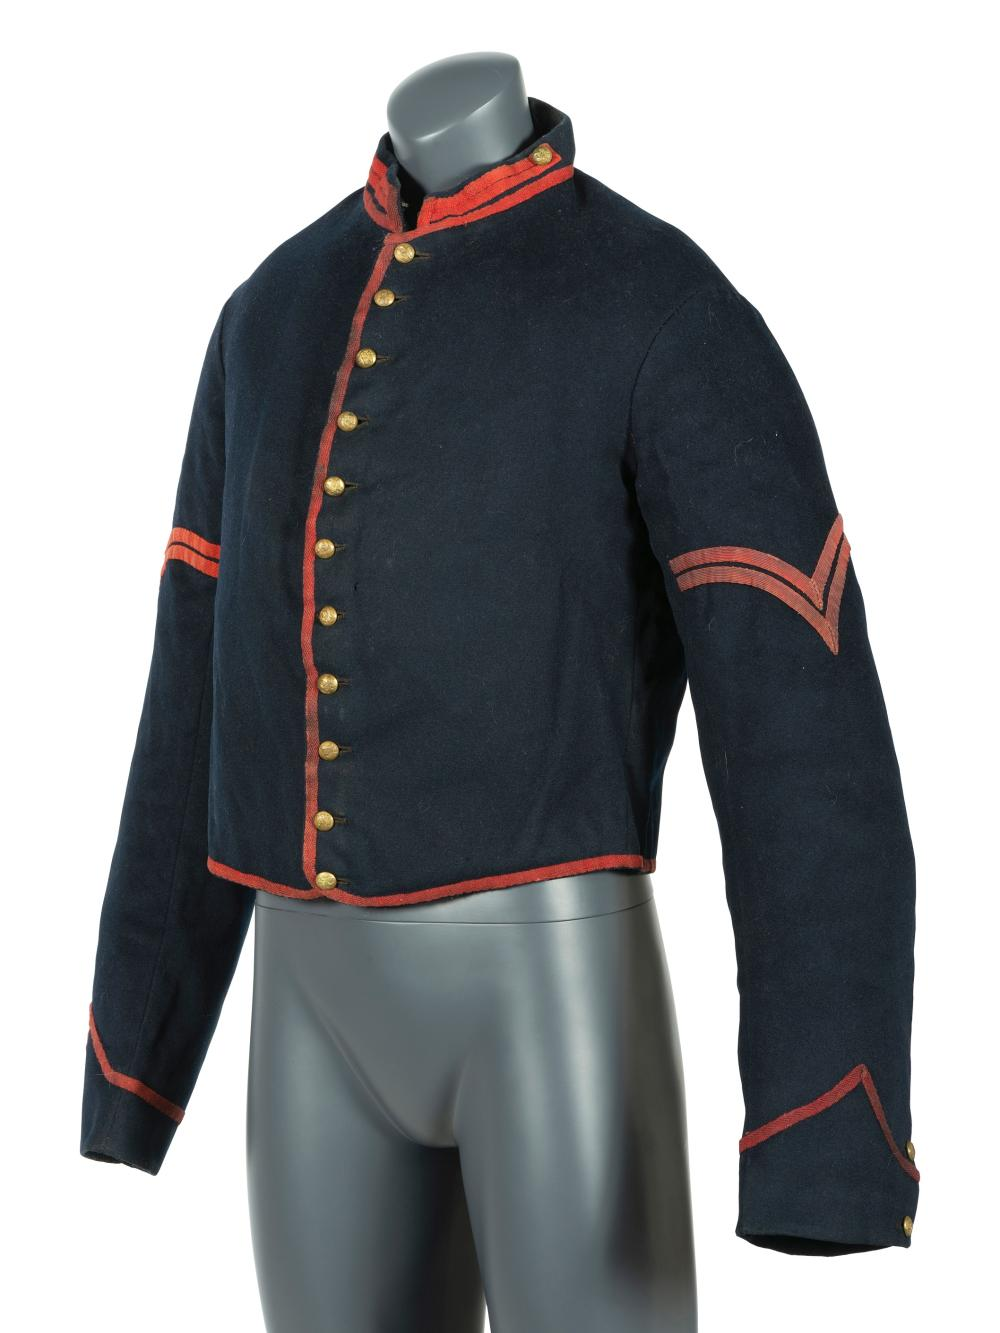 Model 1855 artillery corporal's uniform jacket with field modifications.